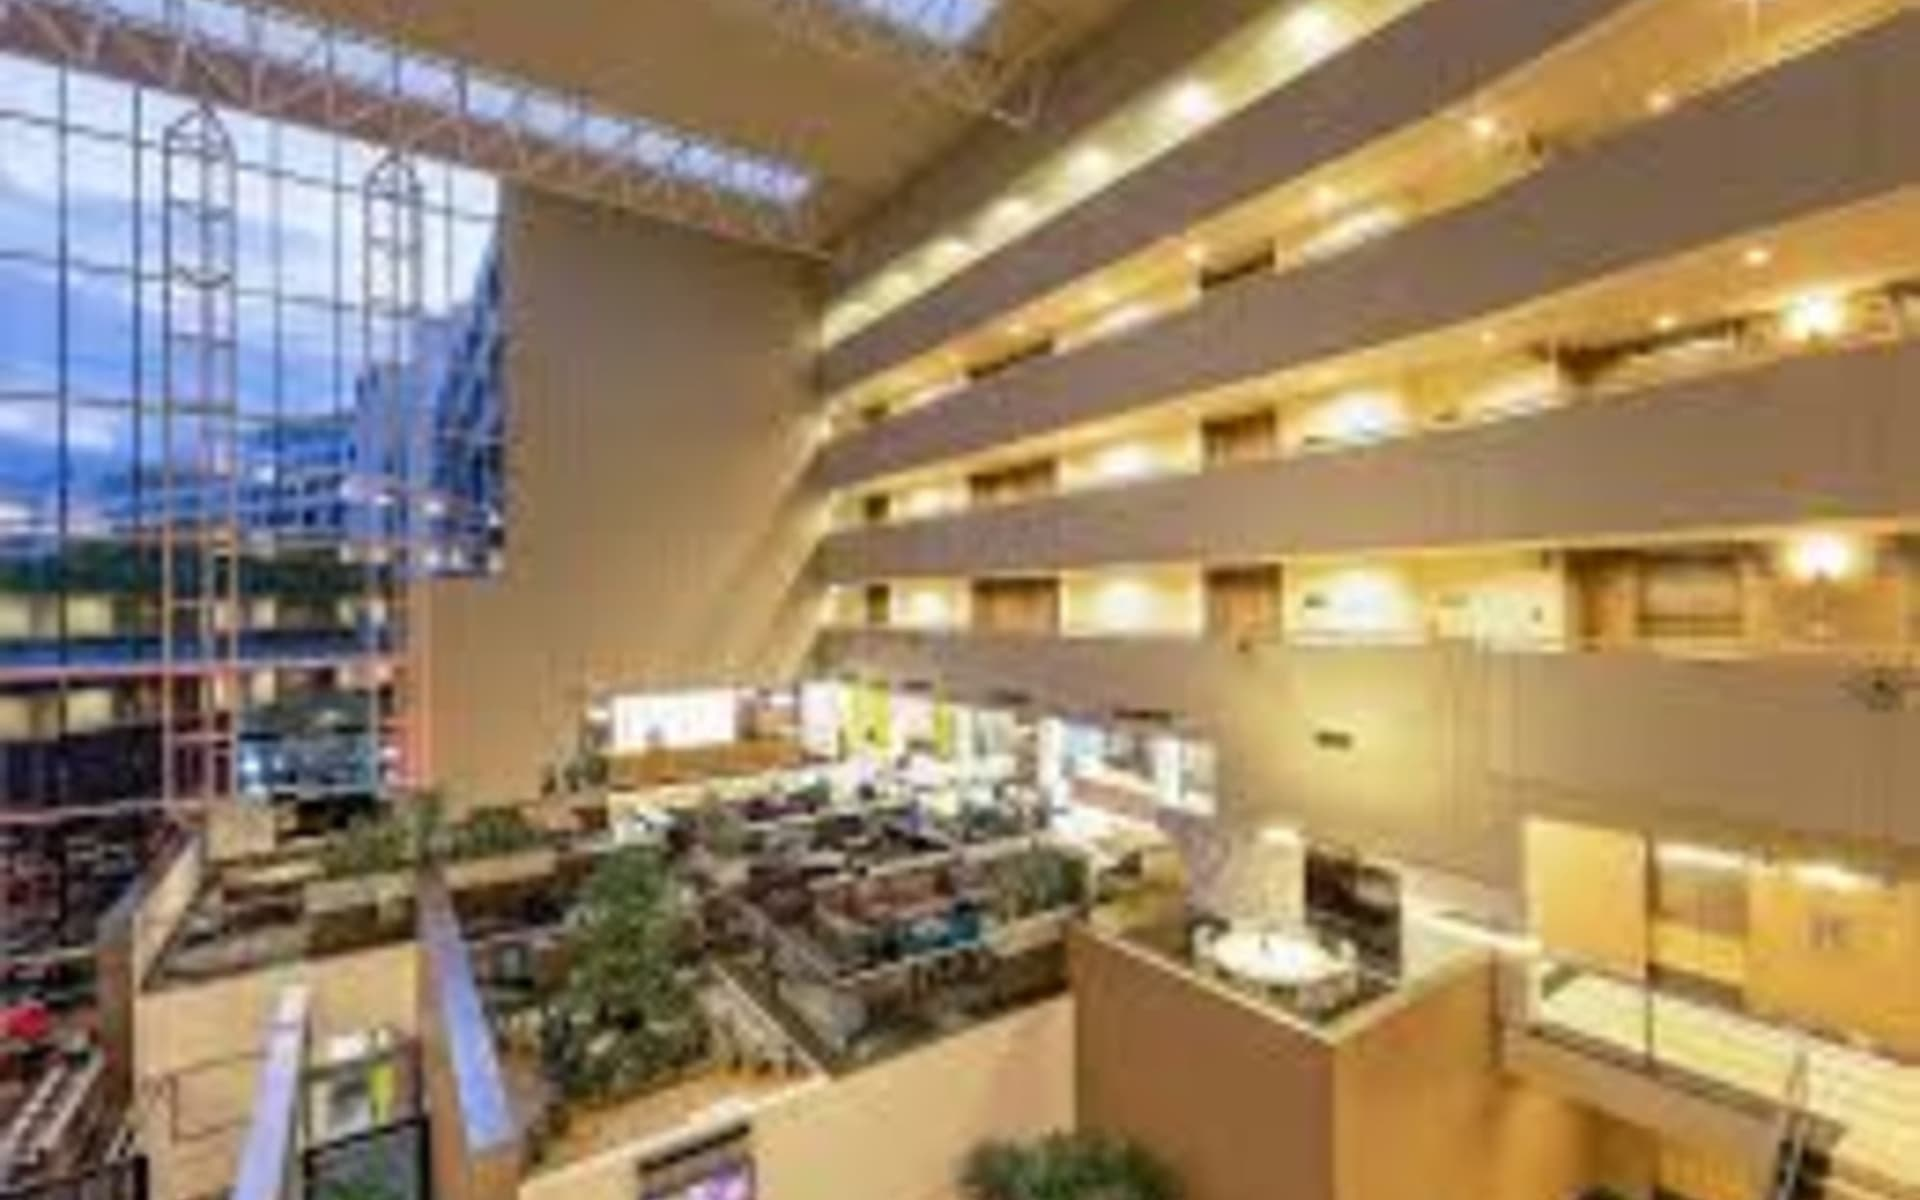 Crowne Plaza Hotel in Canberra:  Crowne Plaza Canberra - Lobby